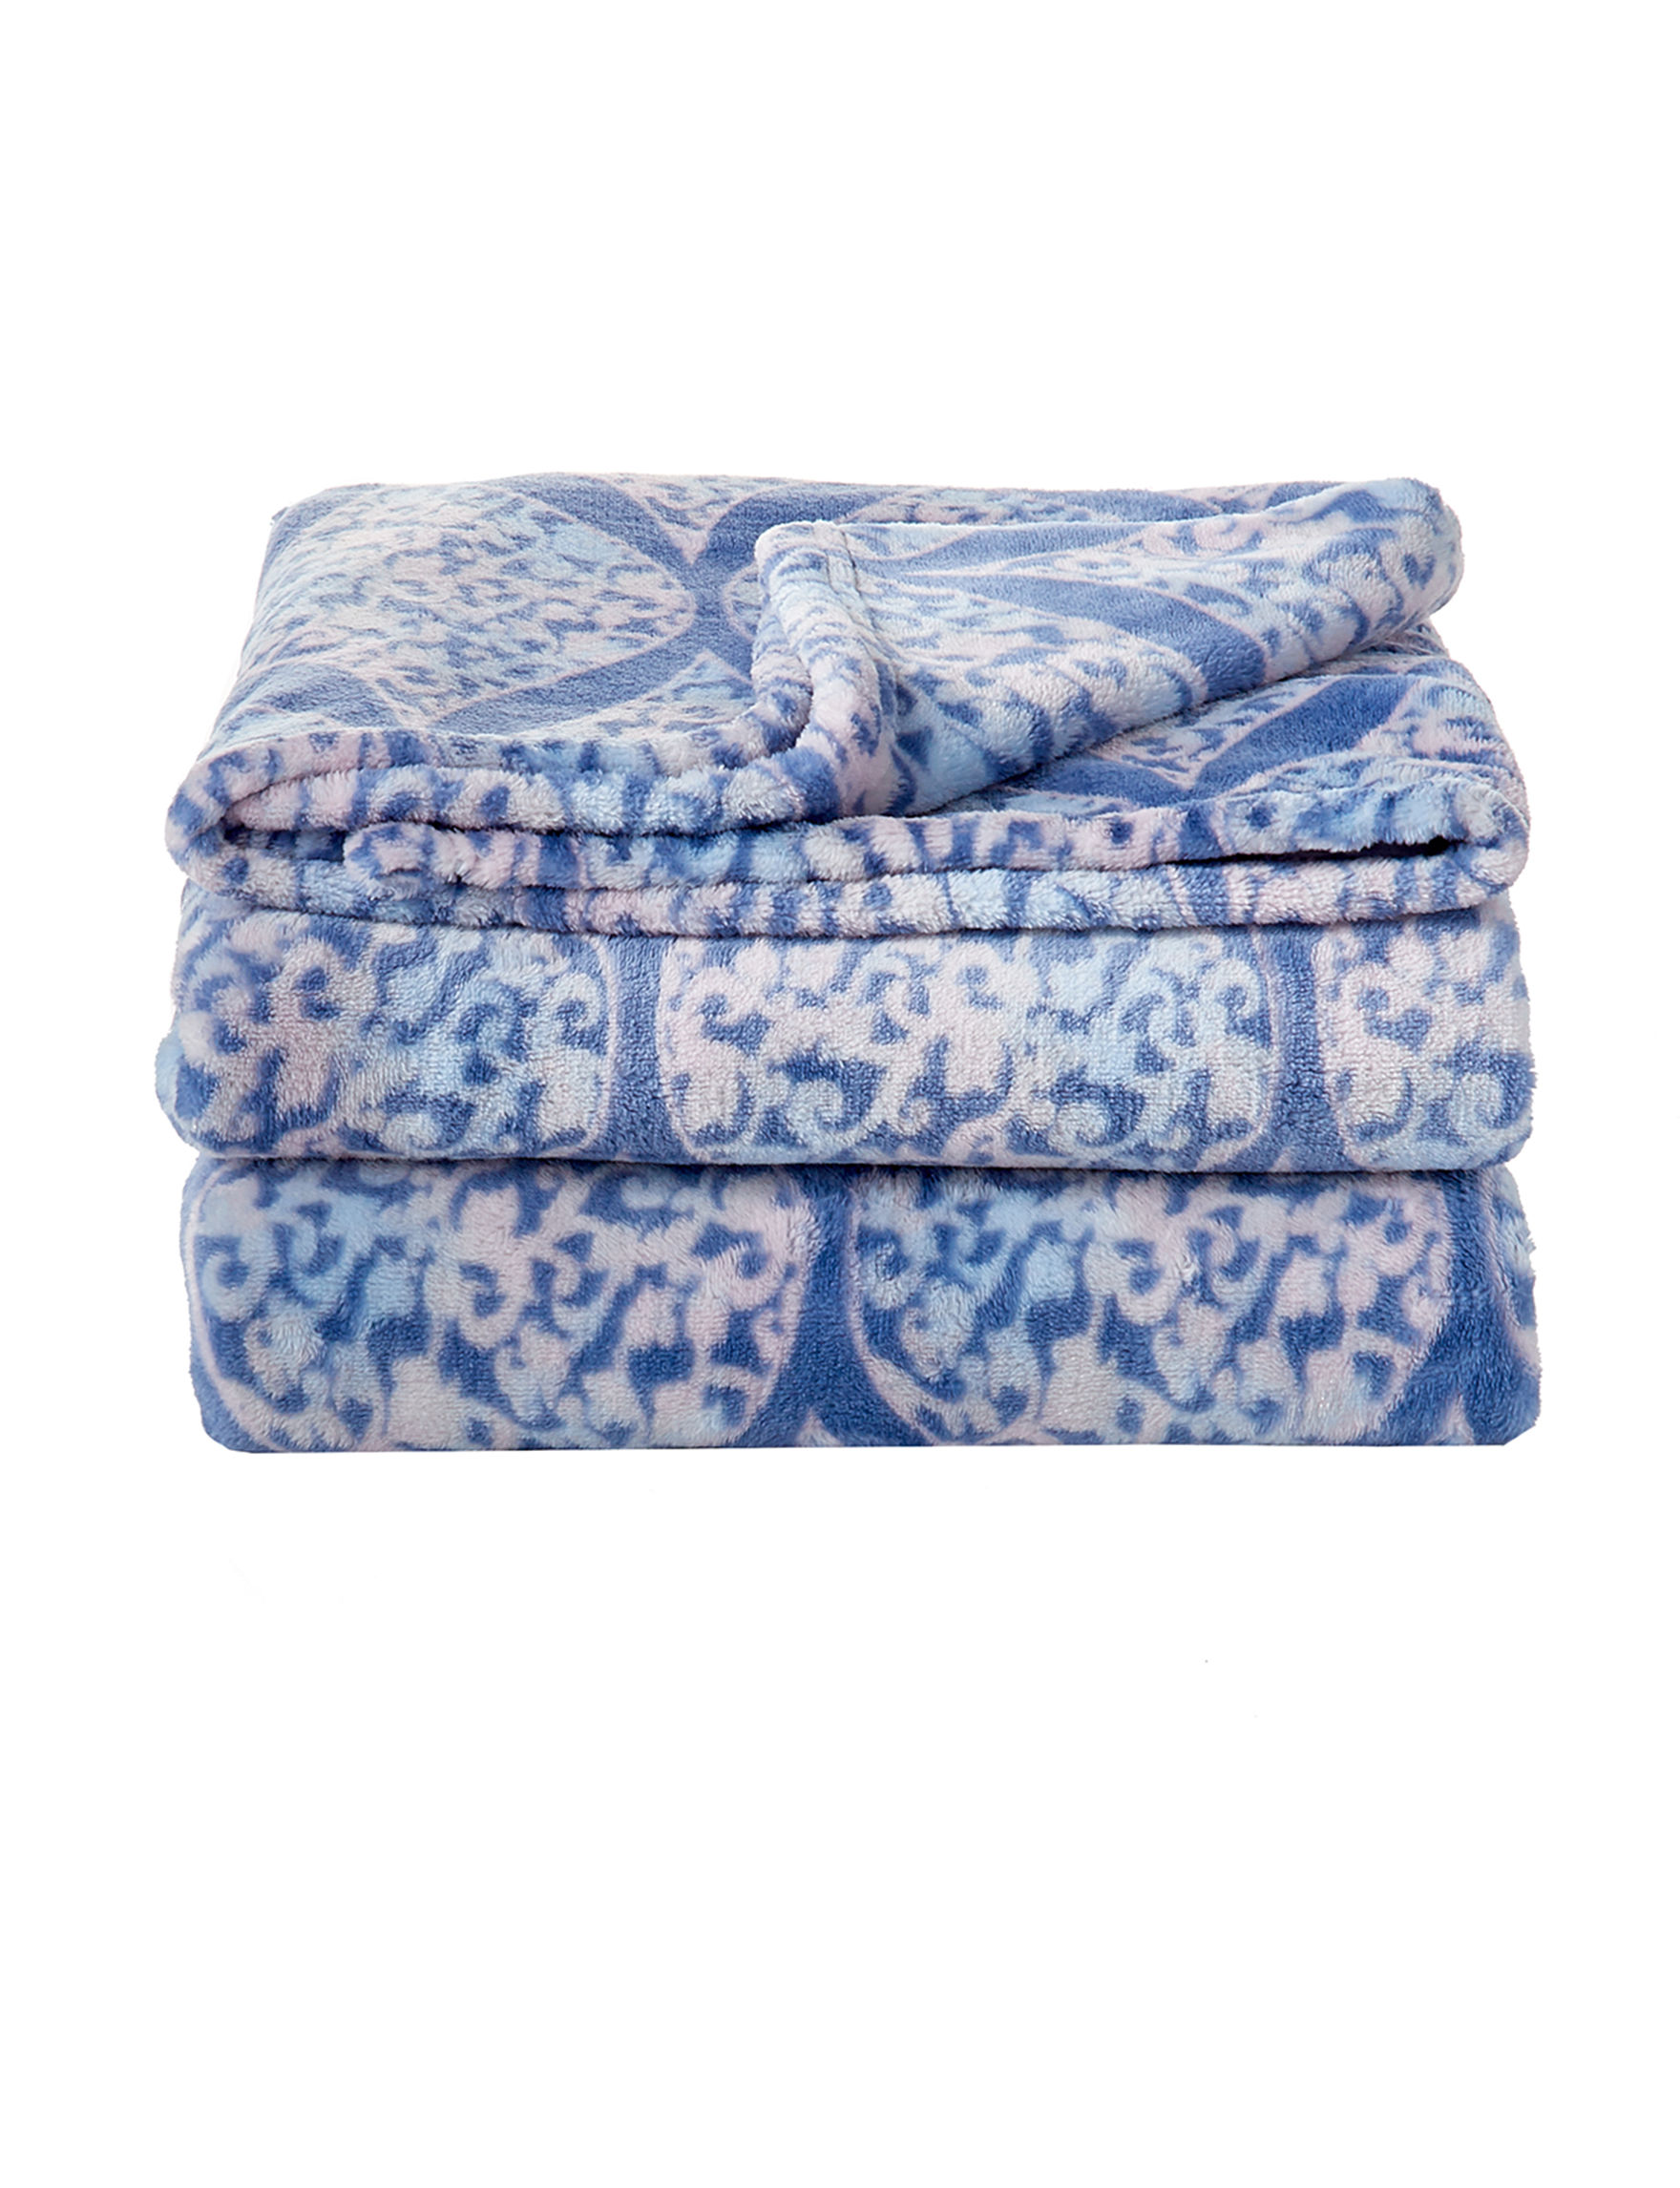 Dream Home NY Blue Blankets & Throws